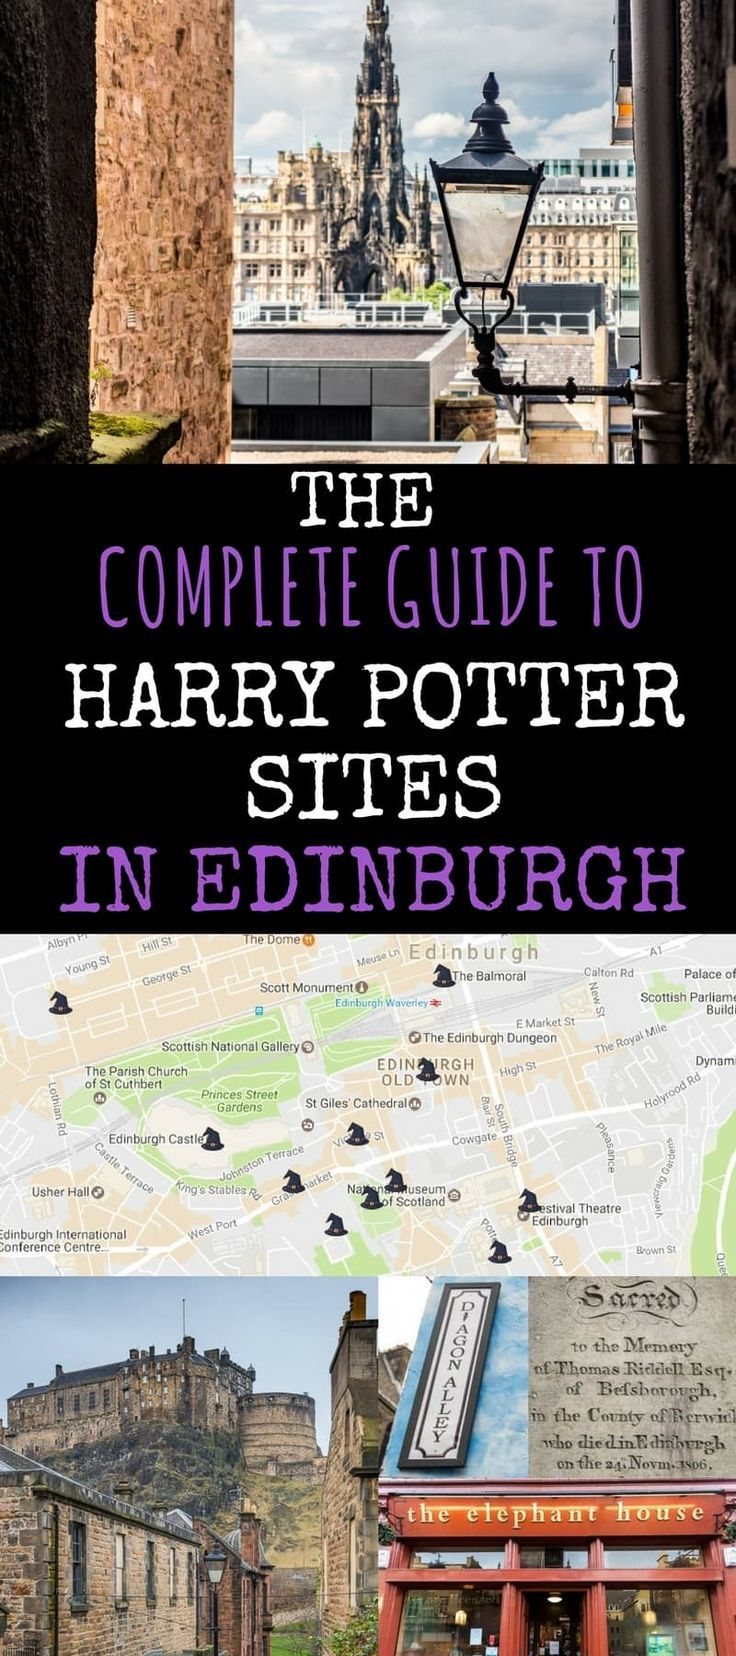 A comprehensive guide to Harry Potter sites in Edinburgh Scotland. Coffee houses, gravestones, cobbled streets, and butterbeer!  This guide tells you how to find the sites, how they are connected to Harry Potter and JK Rowling, and tries to separate fact from fiction.: